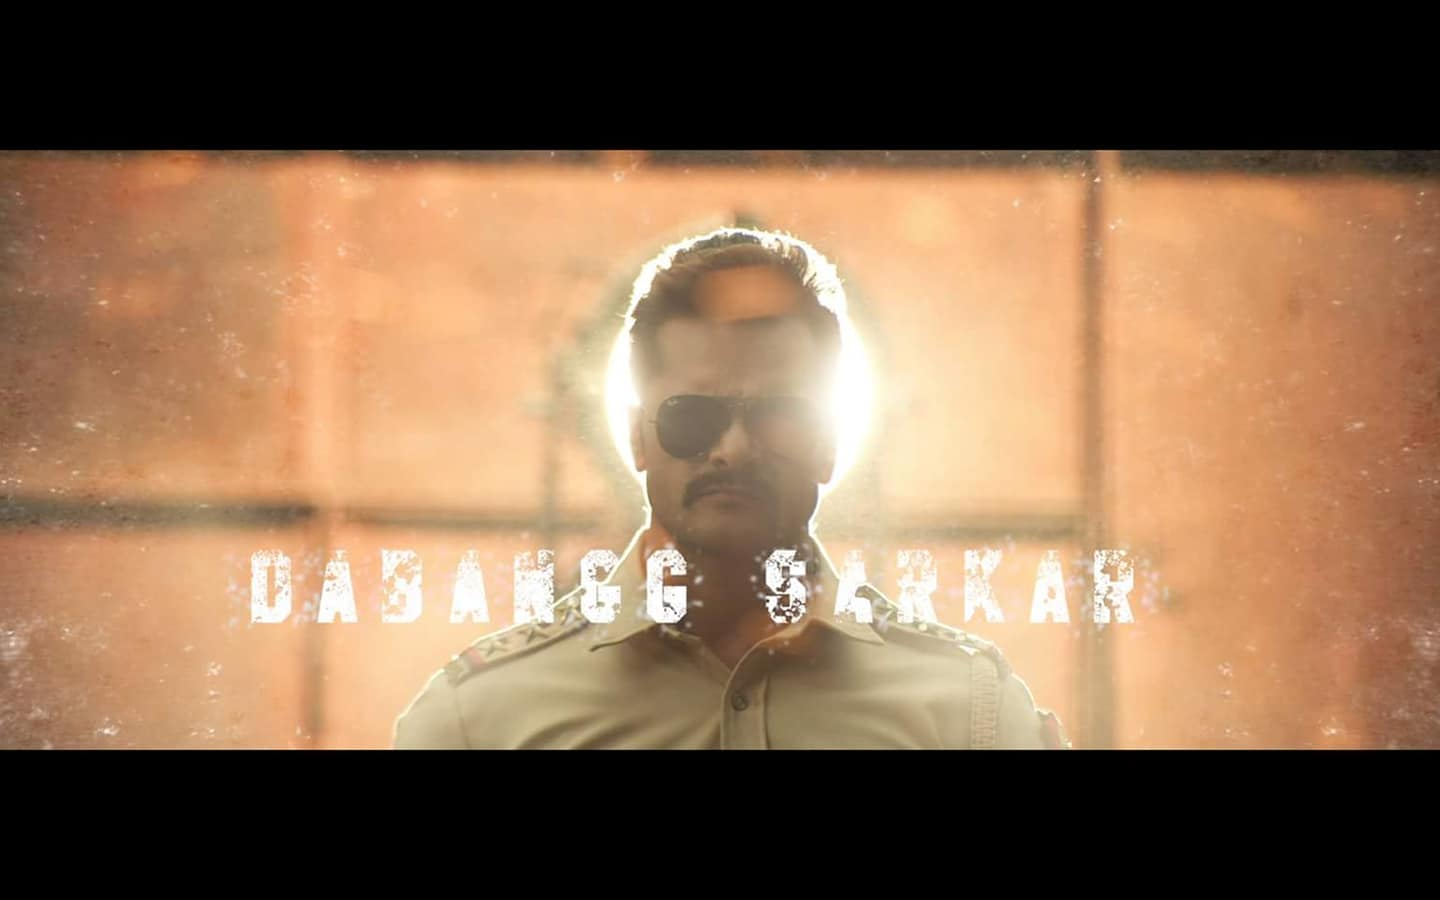 The film 'Dabang Sarkar' will be the Dussehra release: - Deepak Kumar